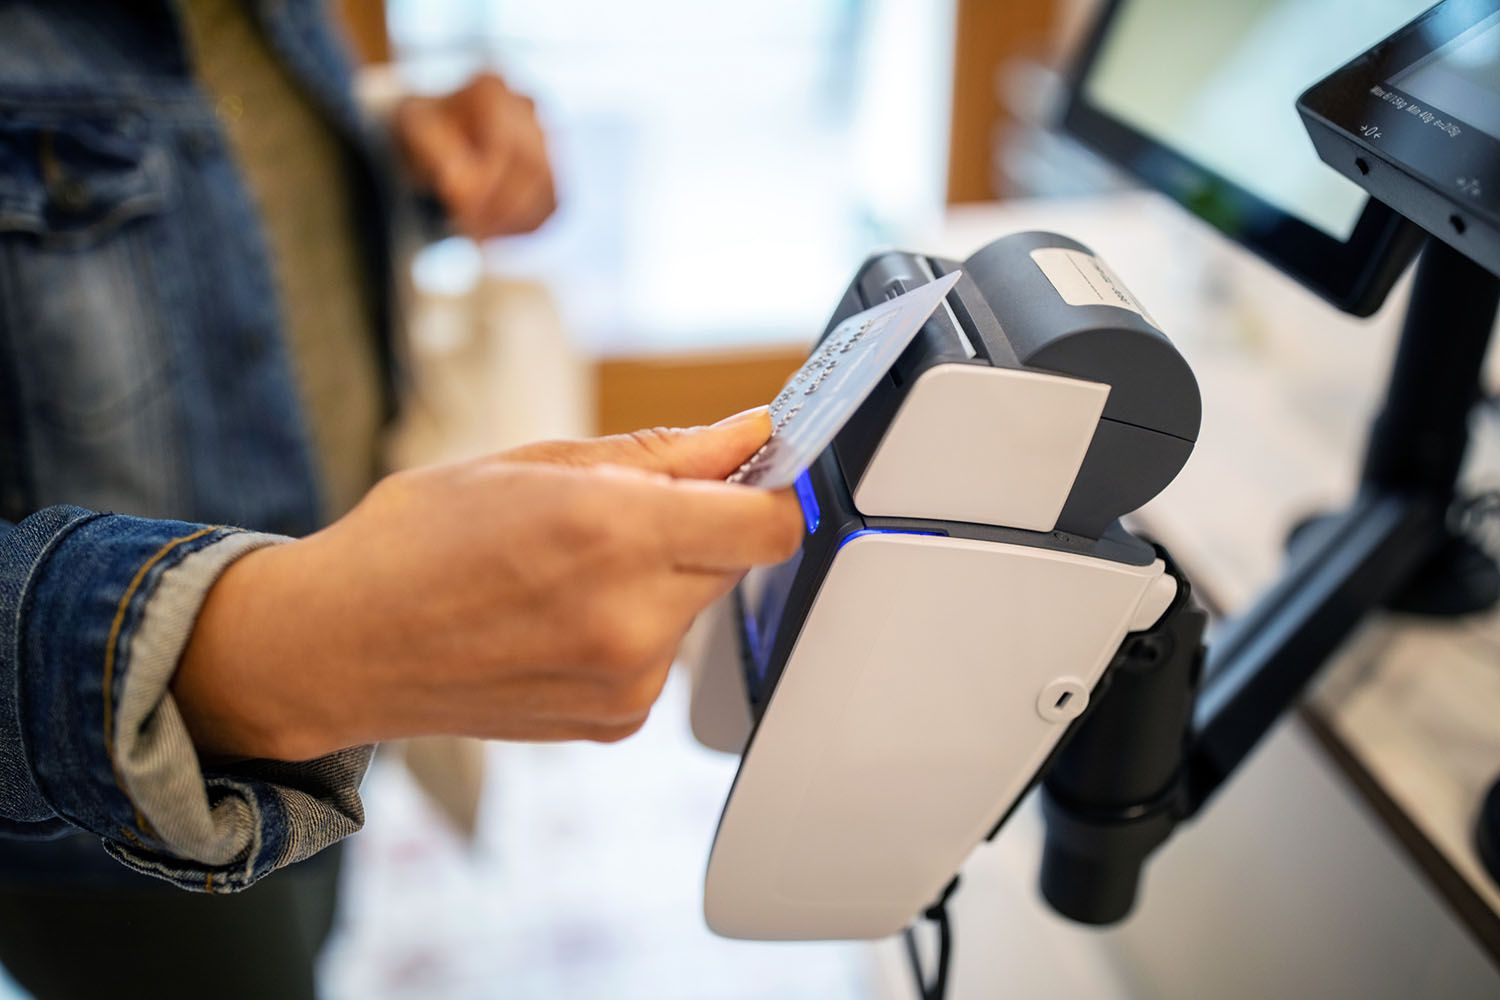 The Best Bitcoin Debit Cards for 2021